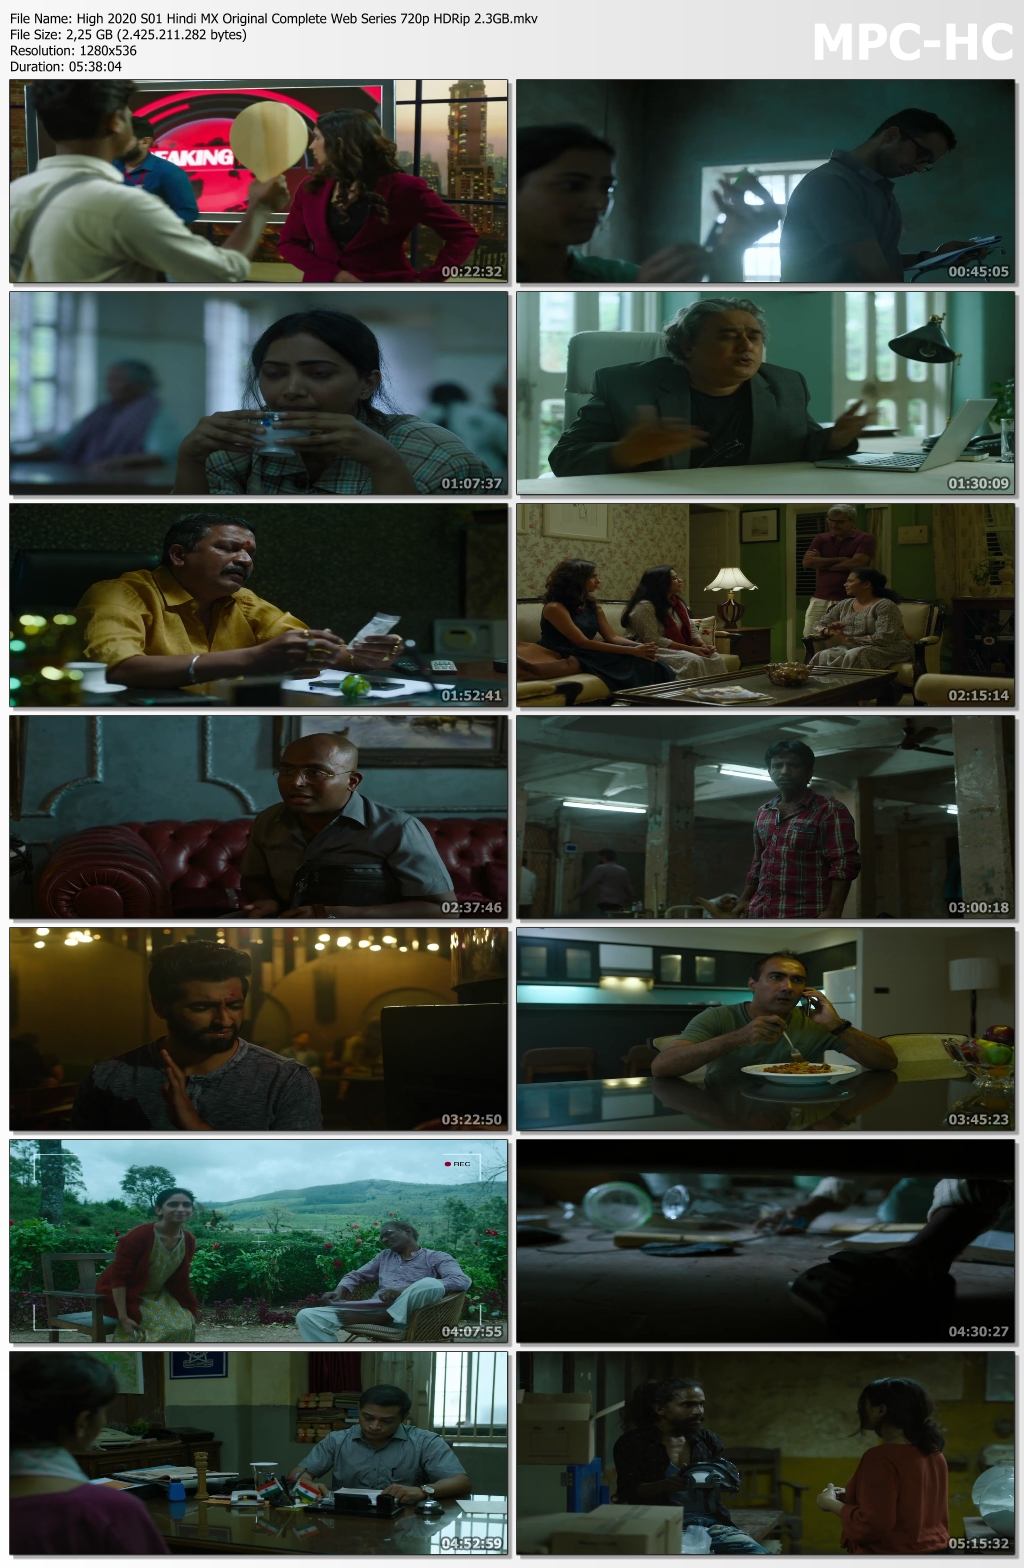 High-2020-S01-Hindi-MX-Original-Complete-Web-Series-720p-HDRip-2-3-GB-mkv-thumbs